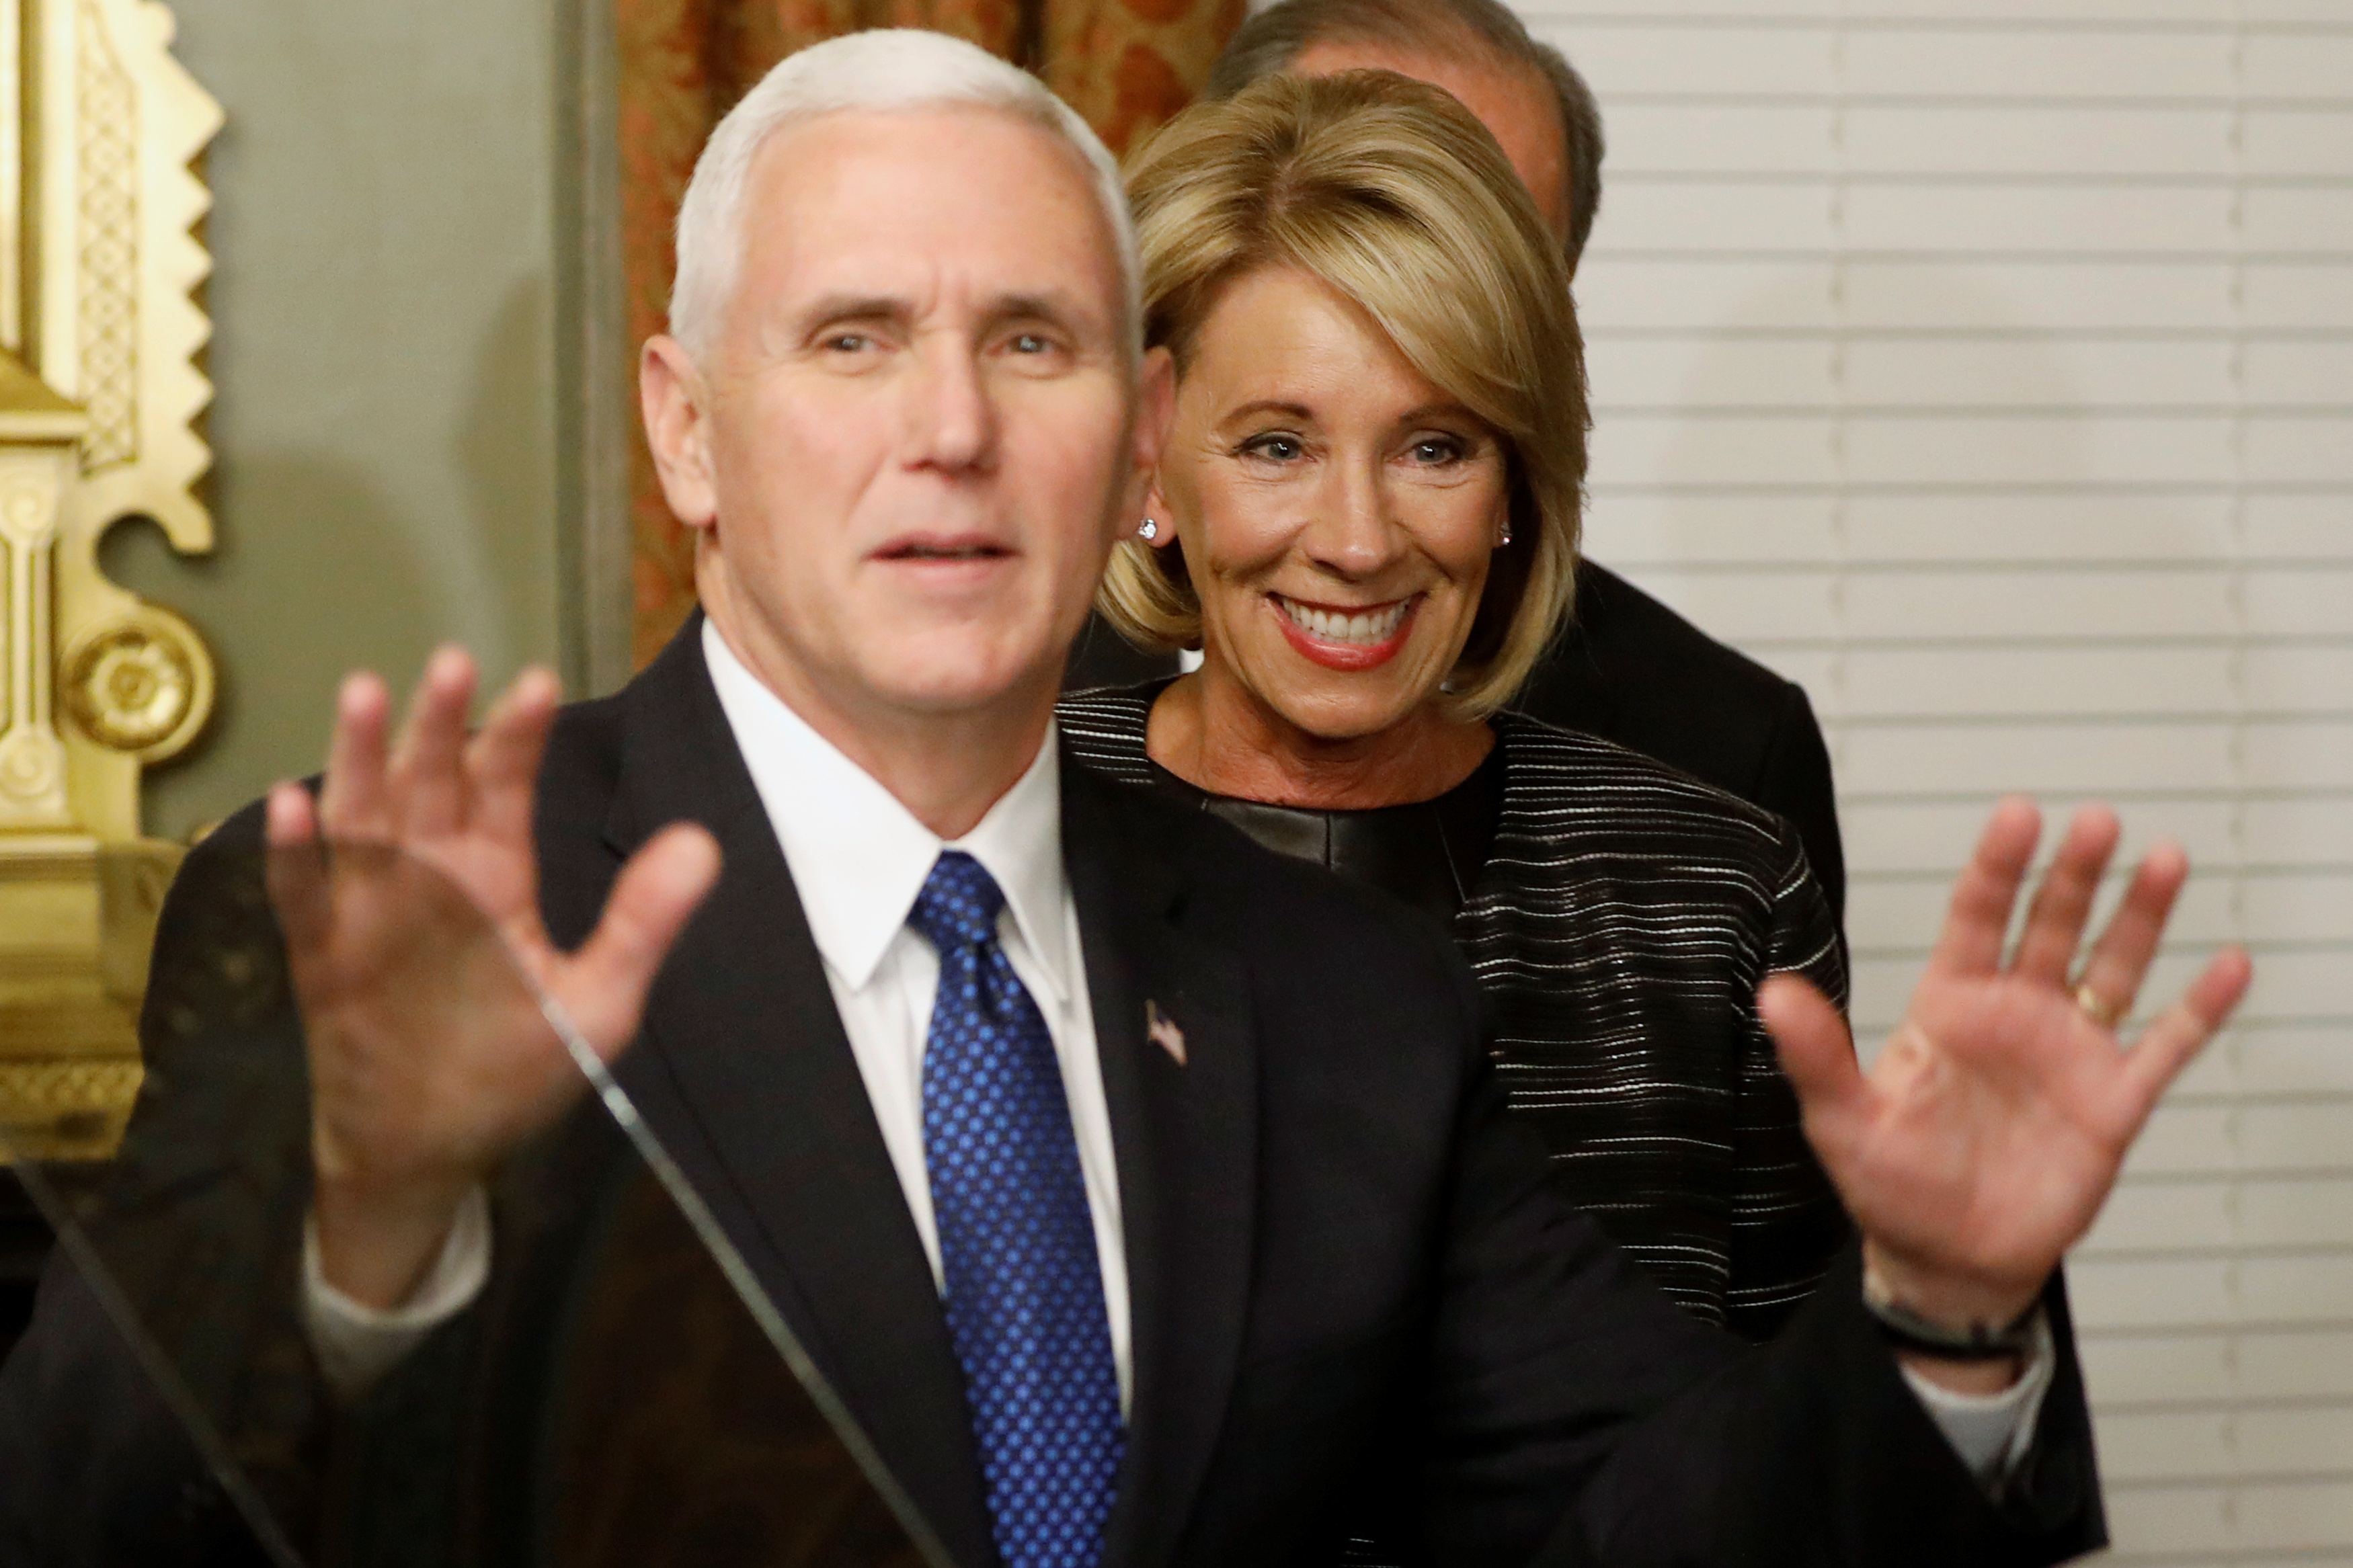 DAY 19 / FEBRUARY 7: Vice President Mike Pence was called in to break a Senate vote tie that threatened to defeat the confirmation of billionaire Betsy DeVos as education secretary.